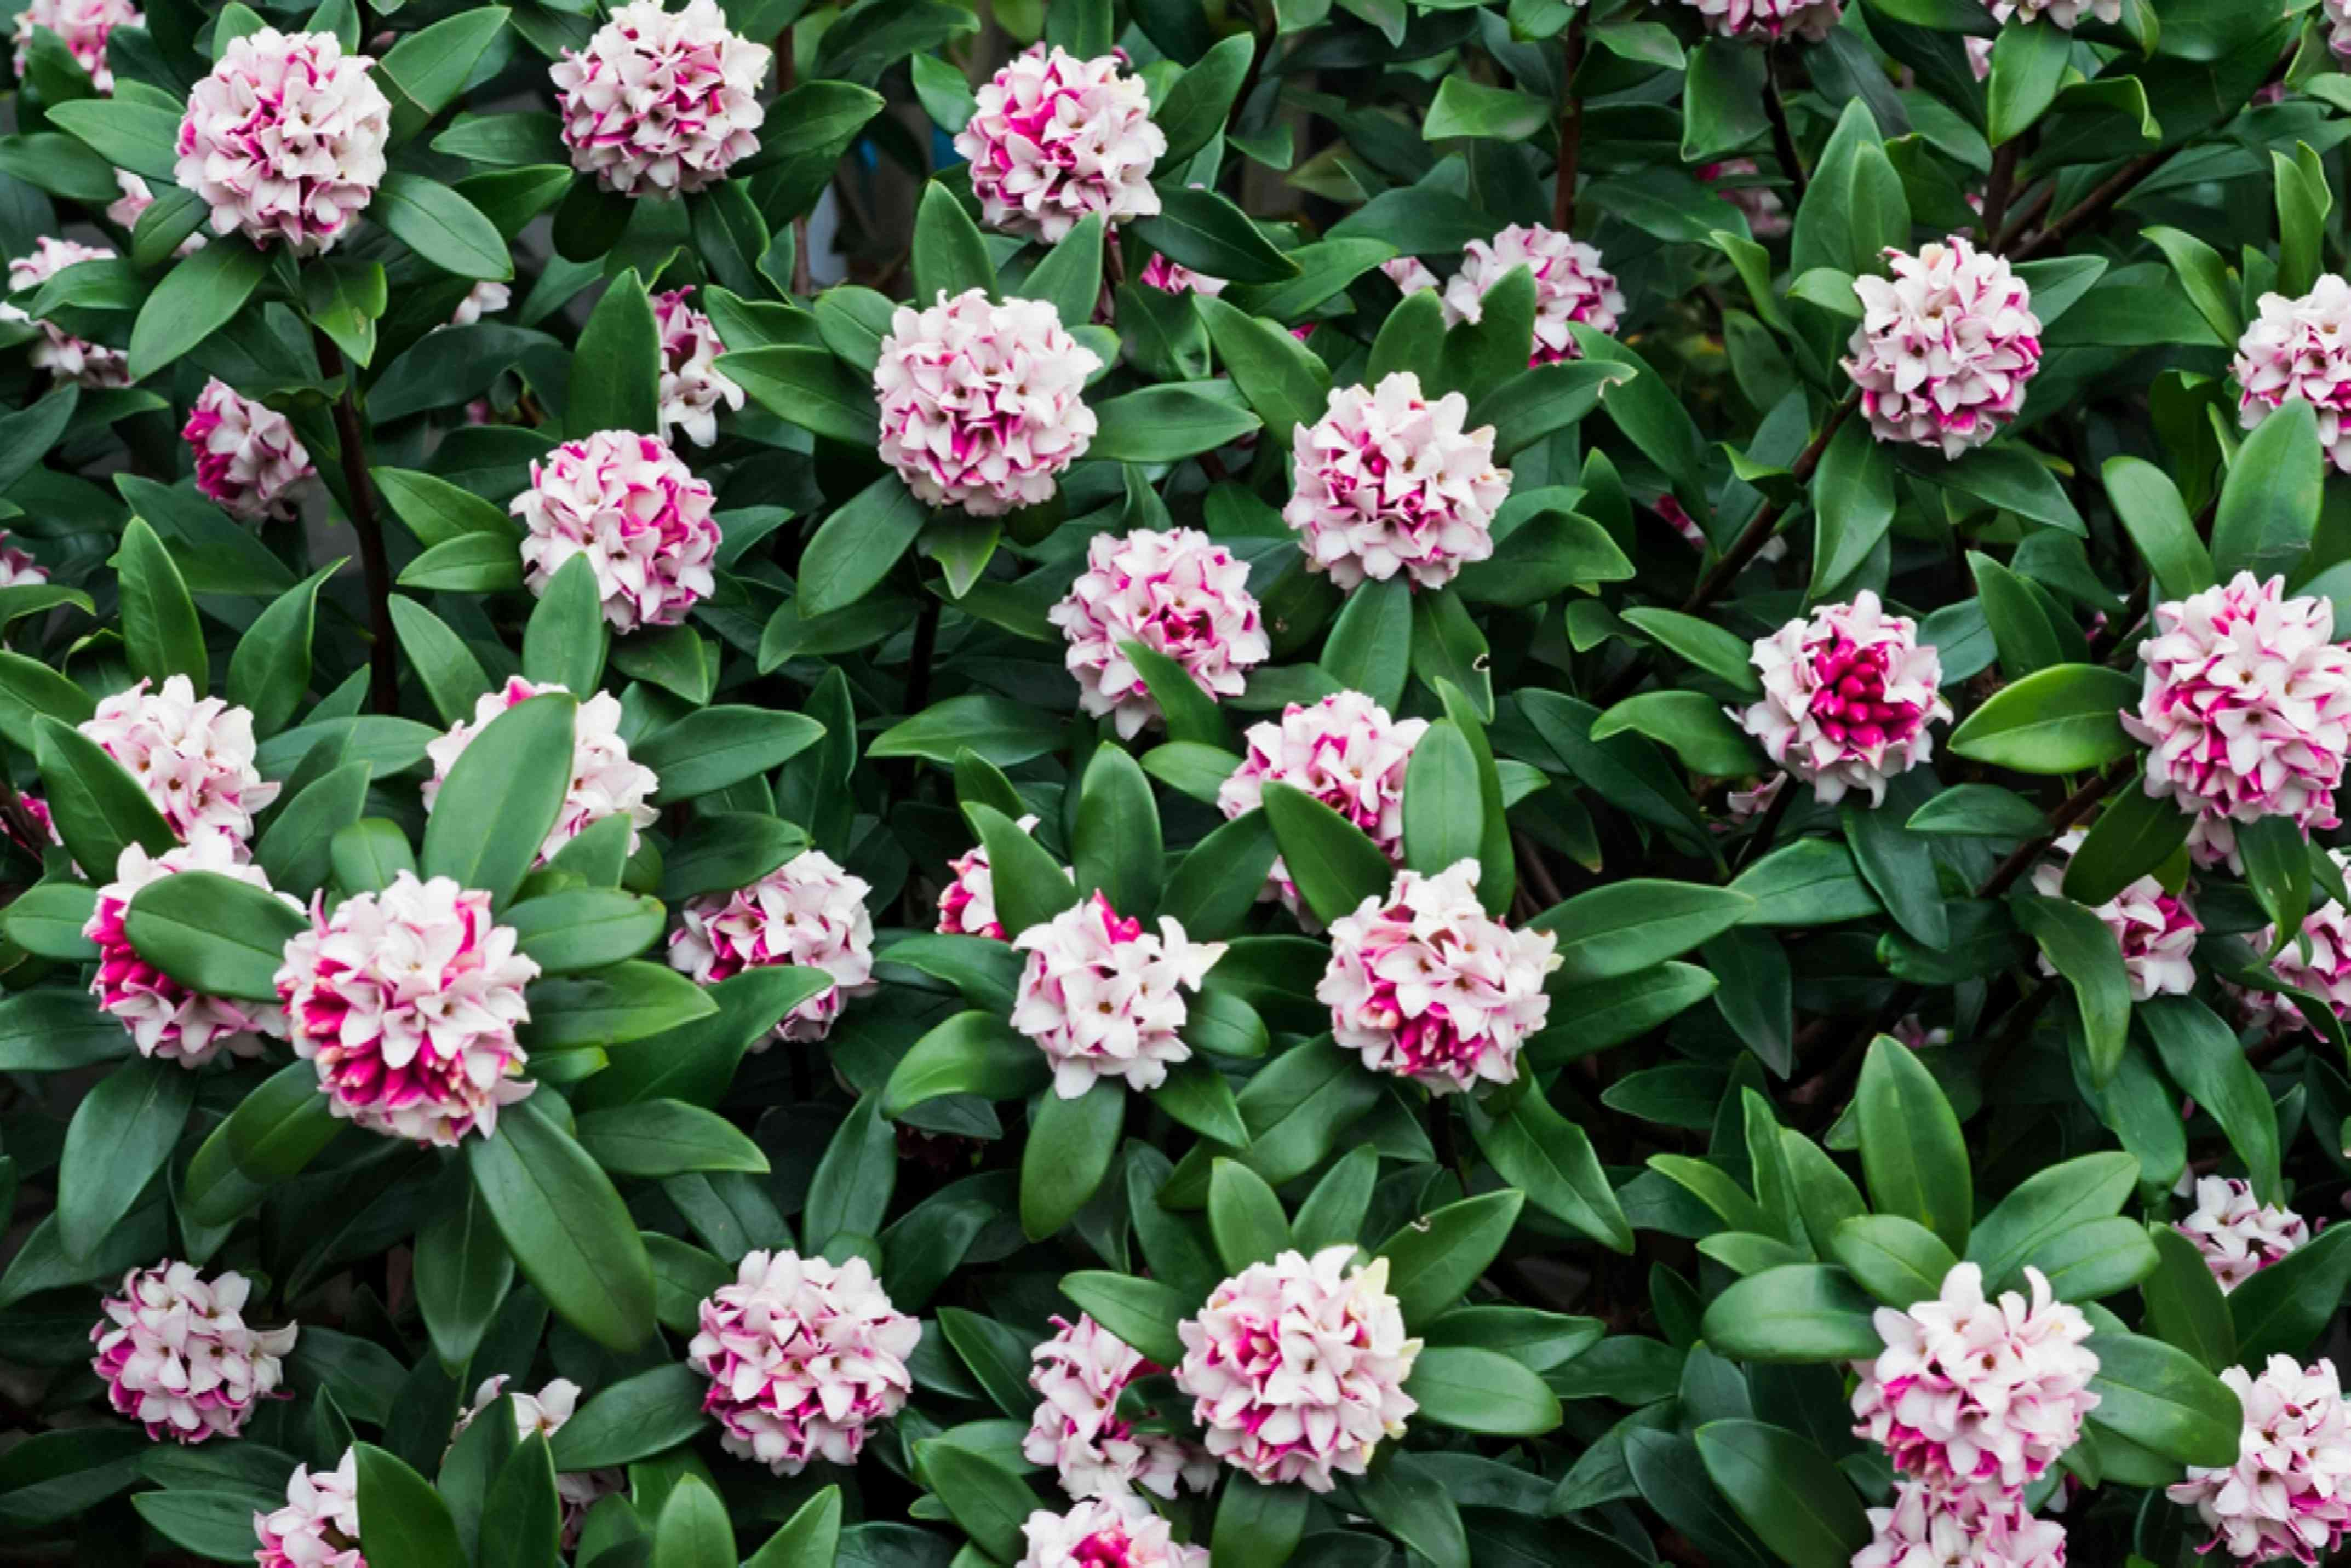 Landscape of daphne shrub with white and pink flowers